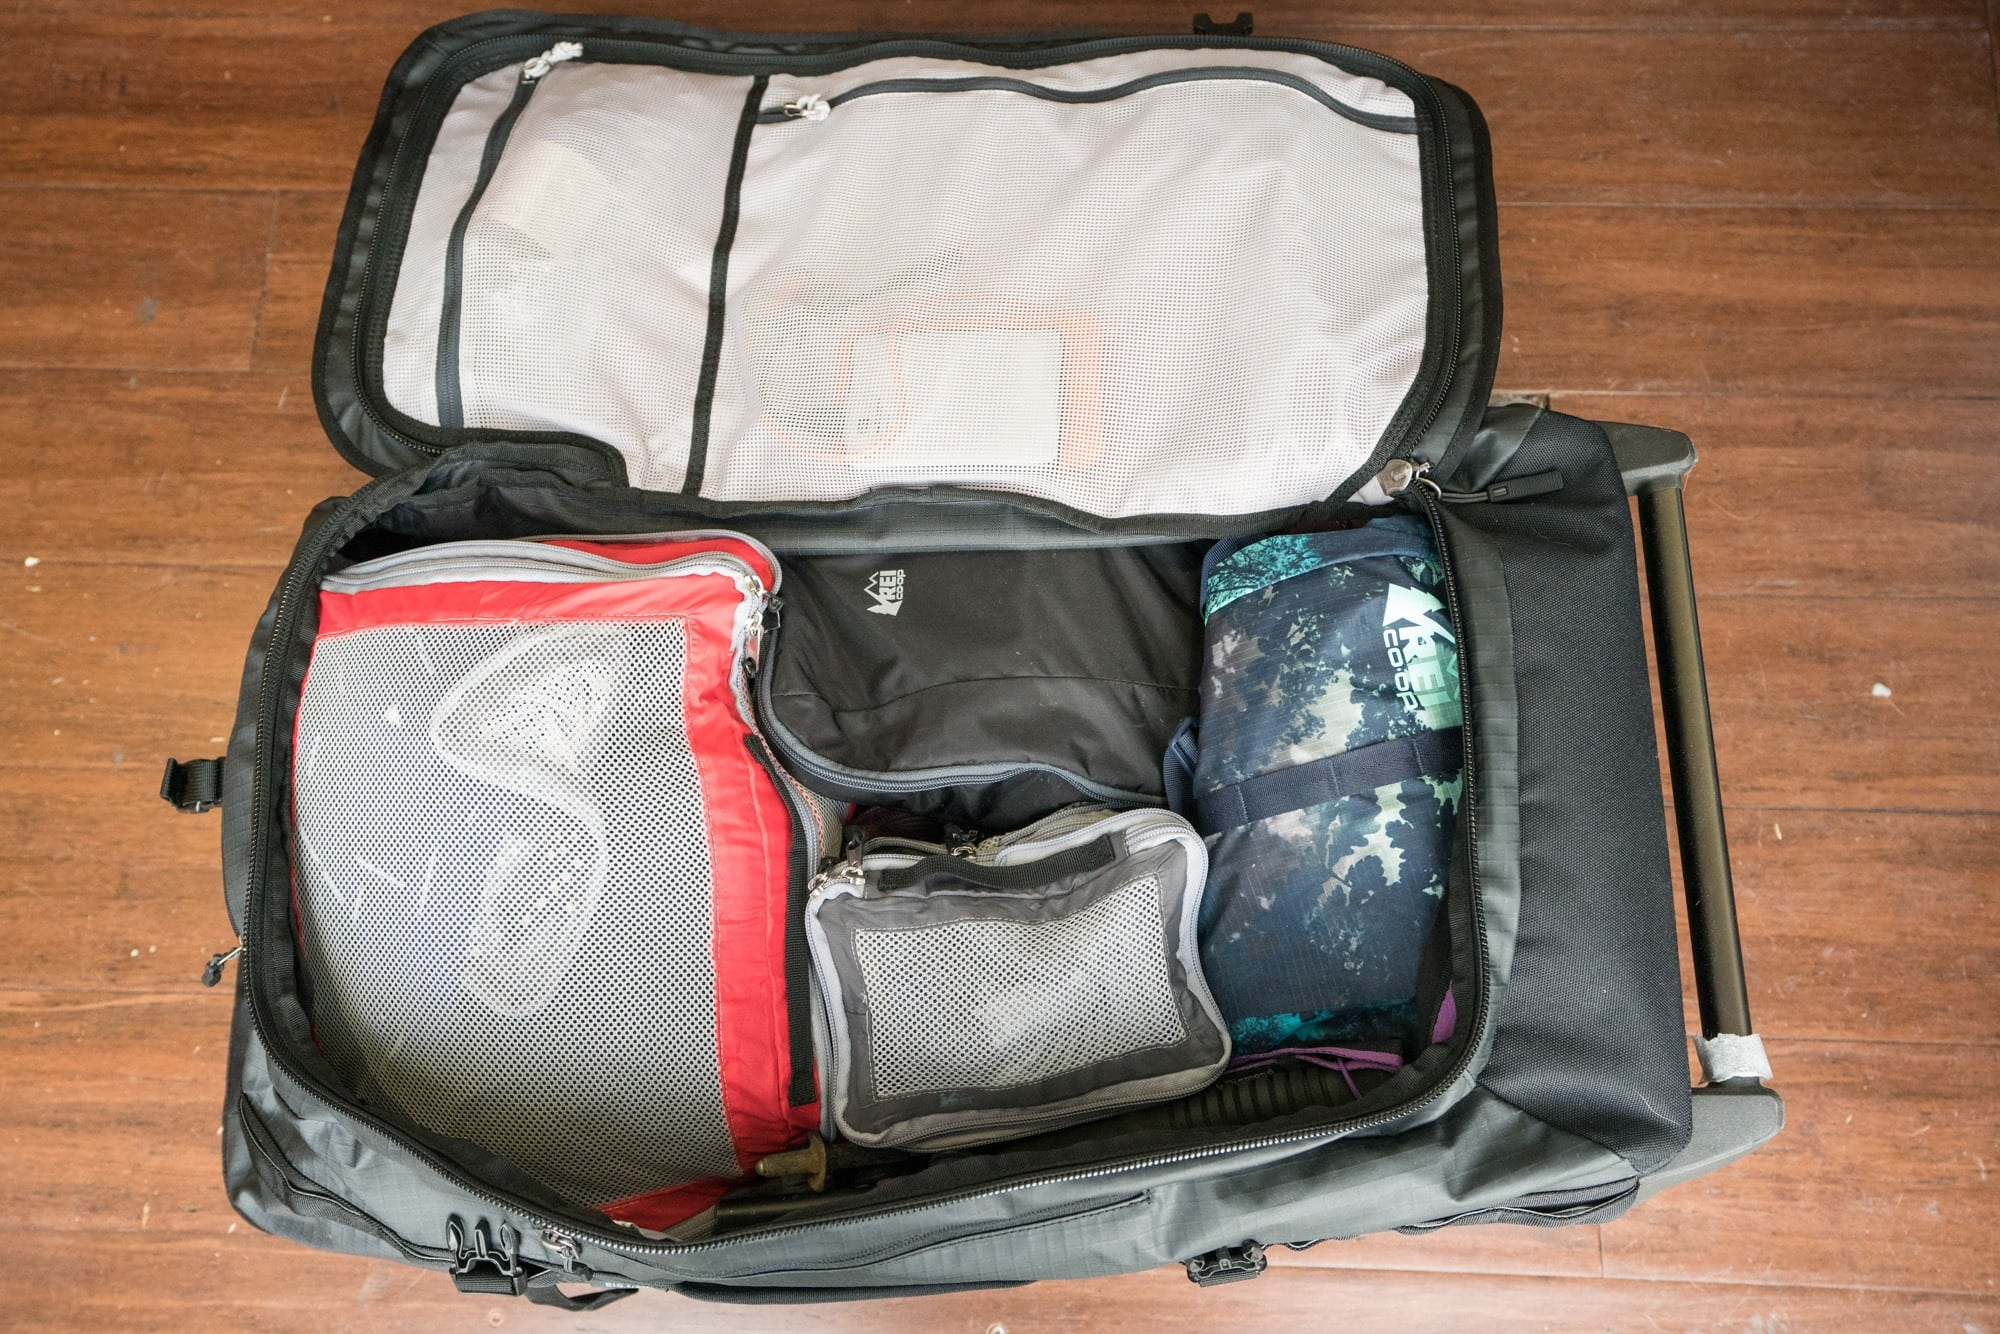 REI Big Haul Rolling Duffel // Read my gear review of the best travel bags by REI that offer durability, smart design and function, while being priced lower than competing outdoor brands.